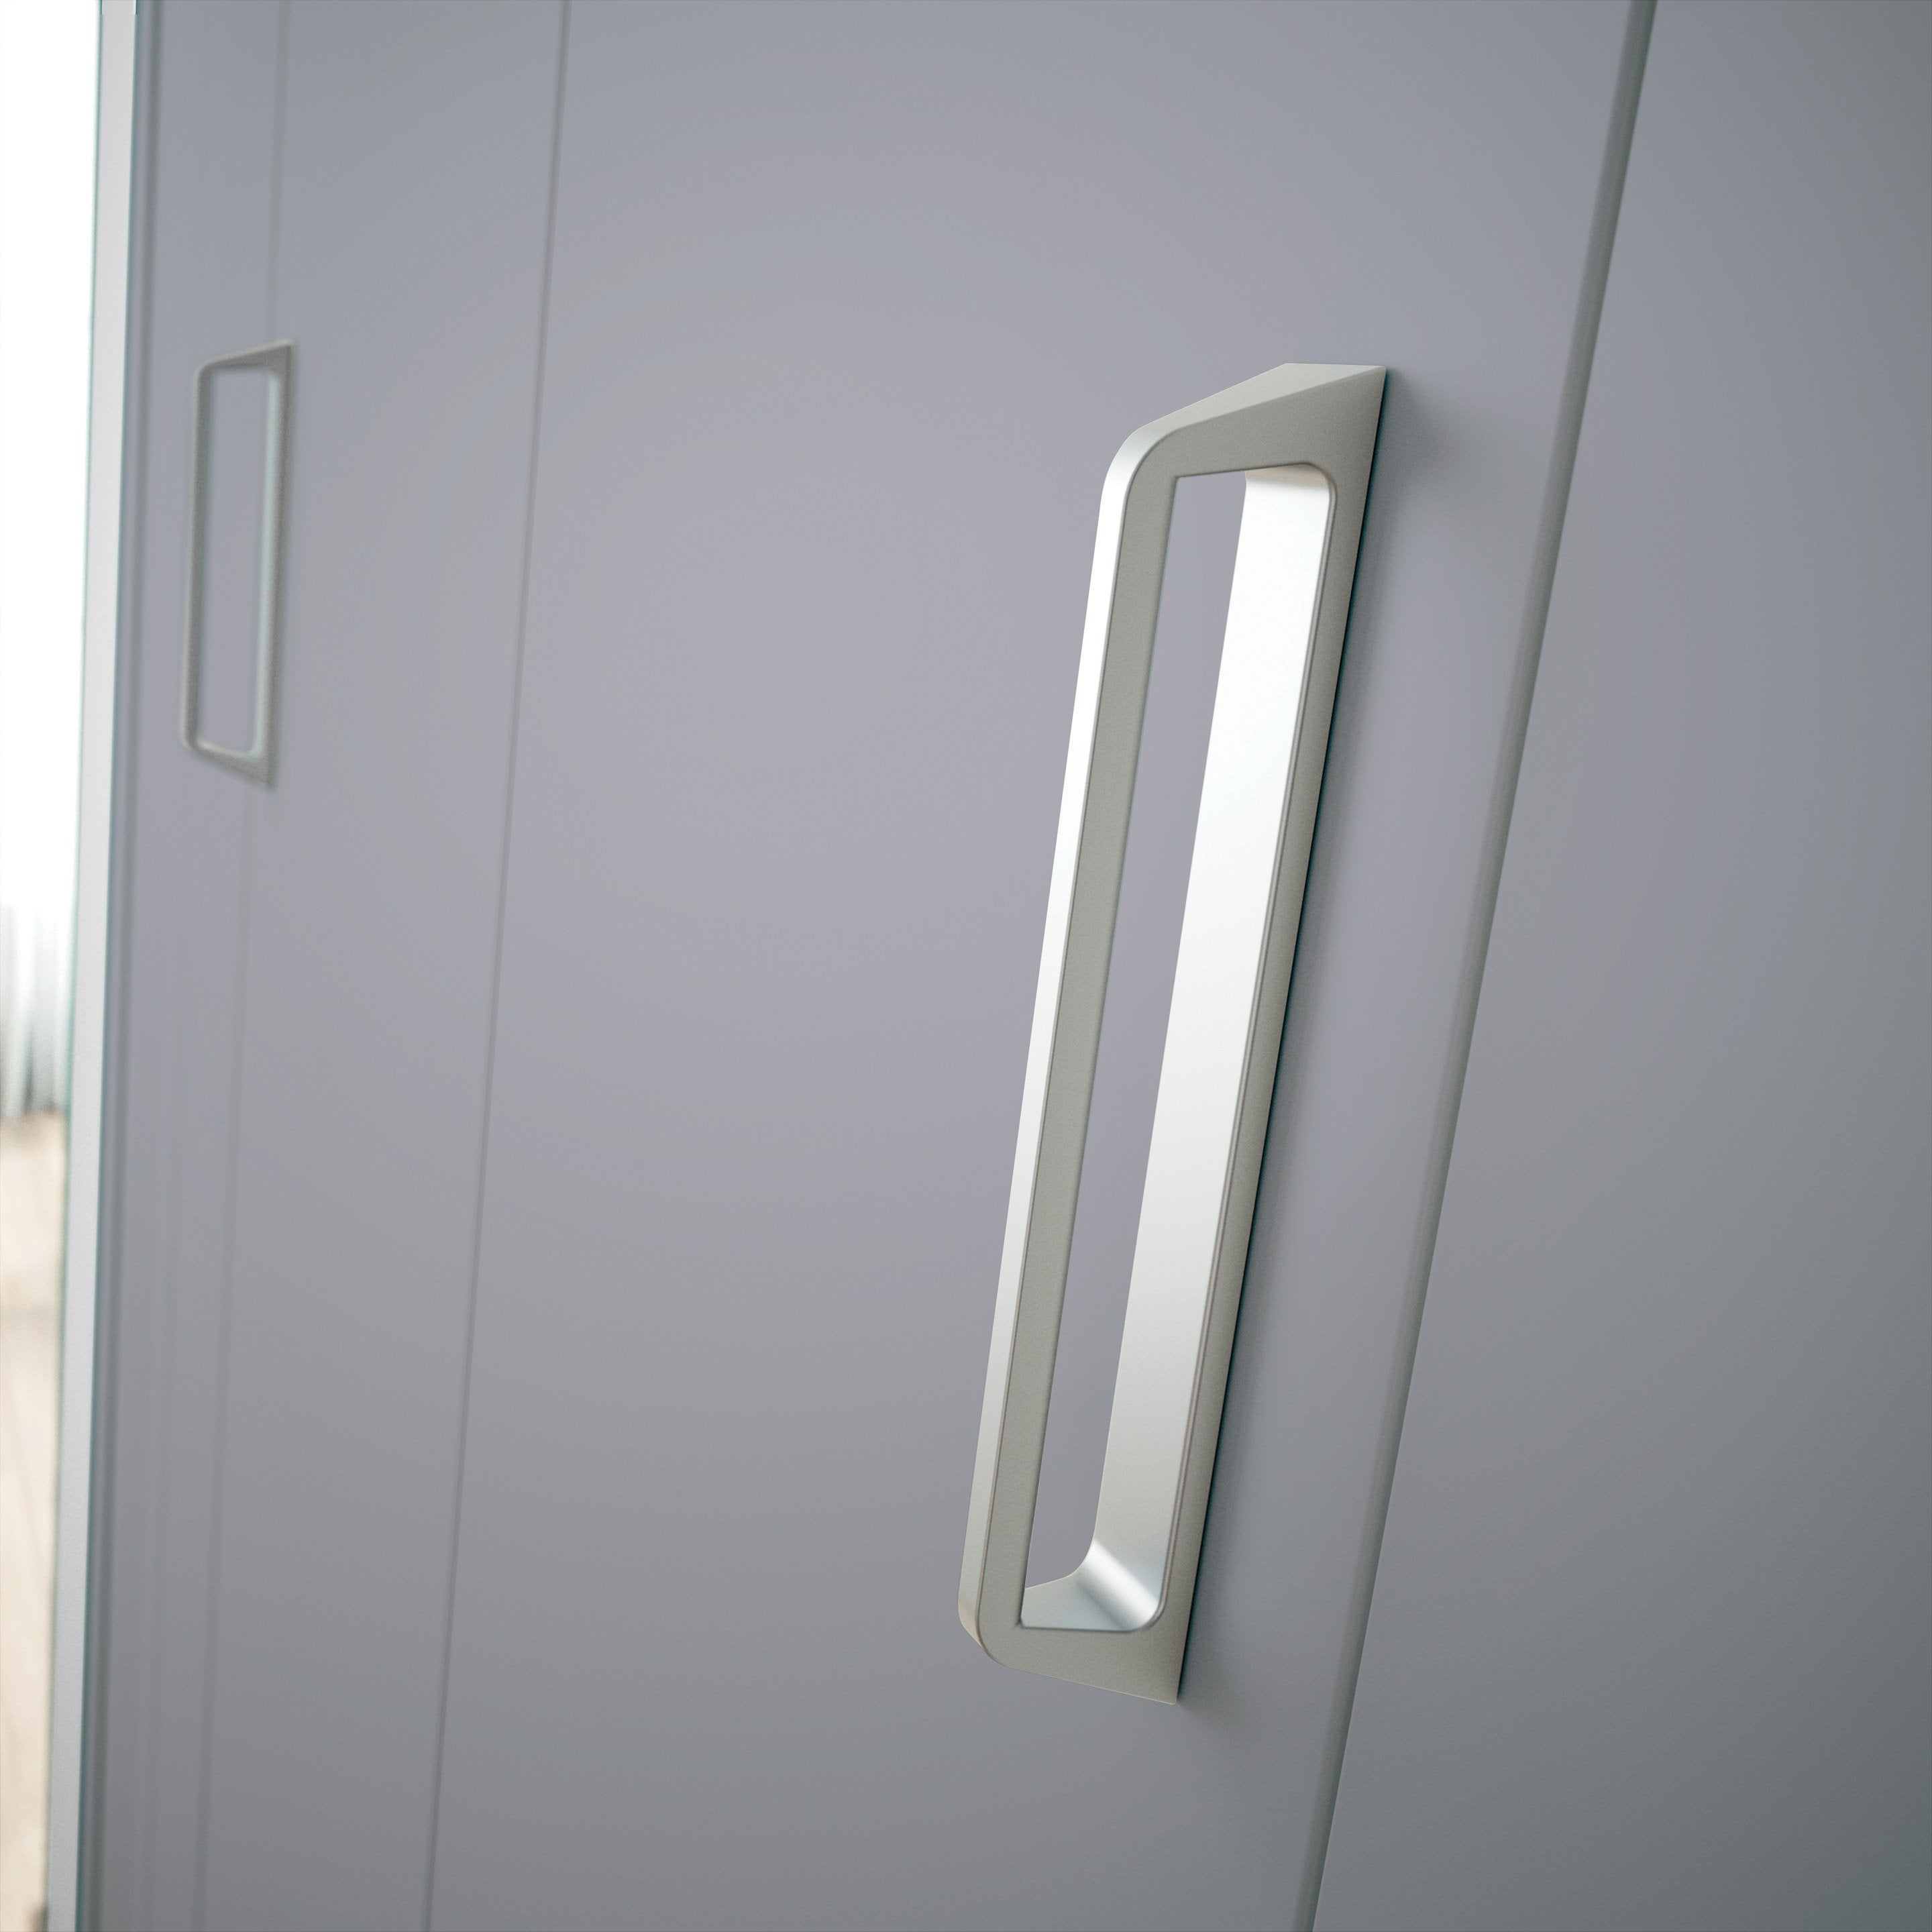 Merveilleux ... Porte De Placard Pliante Gris KAZED L.70 X H.210 Cm